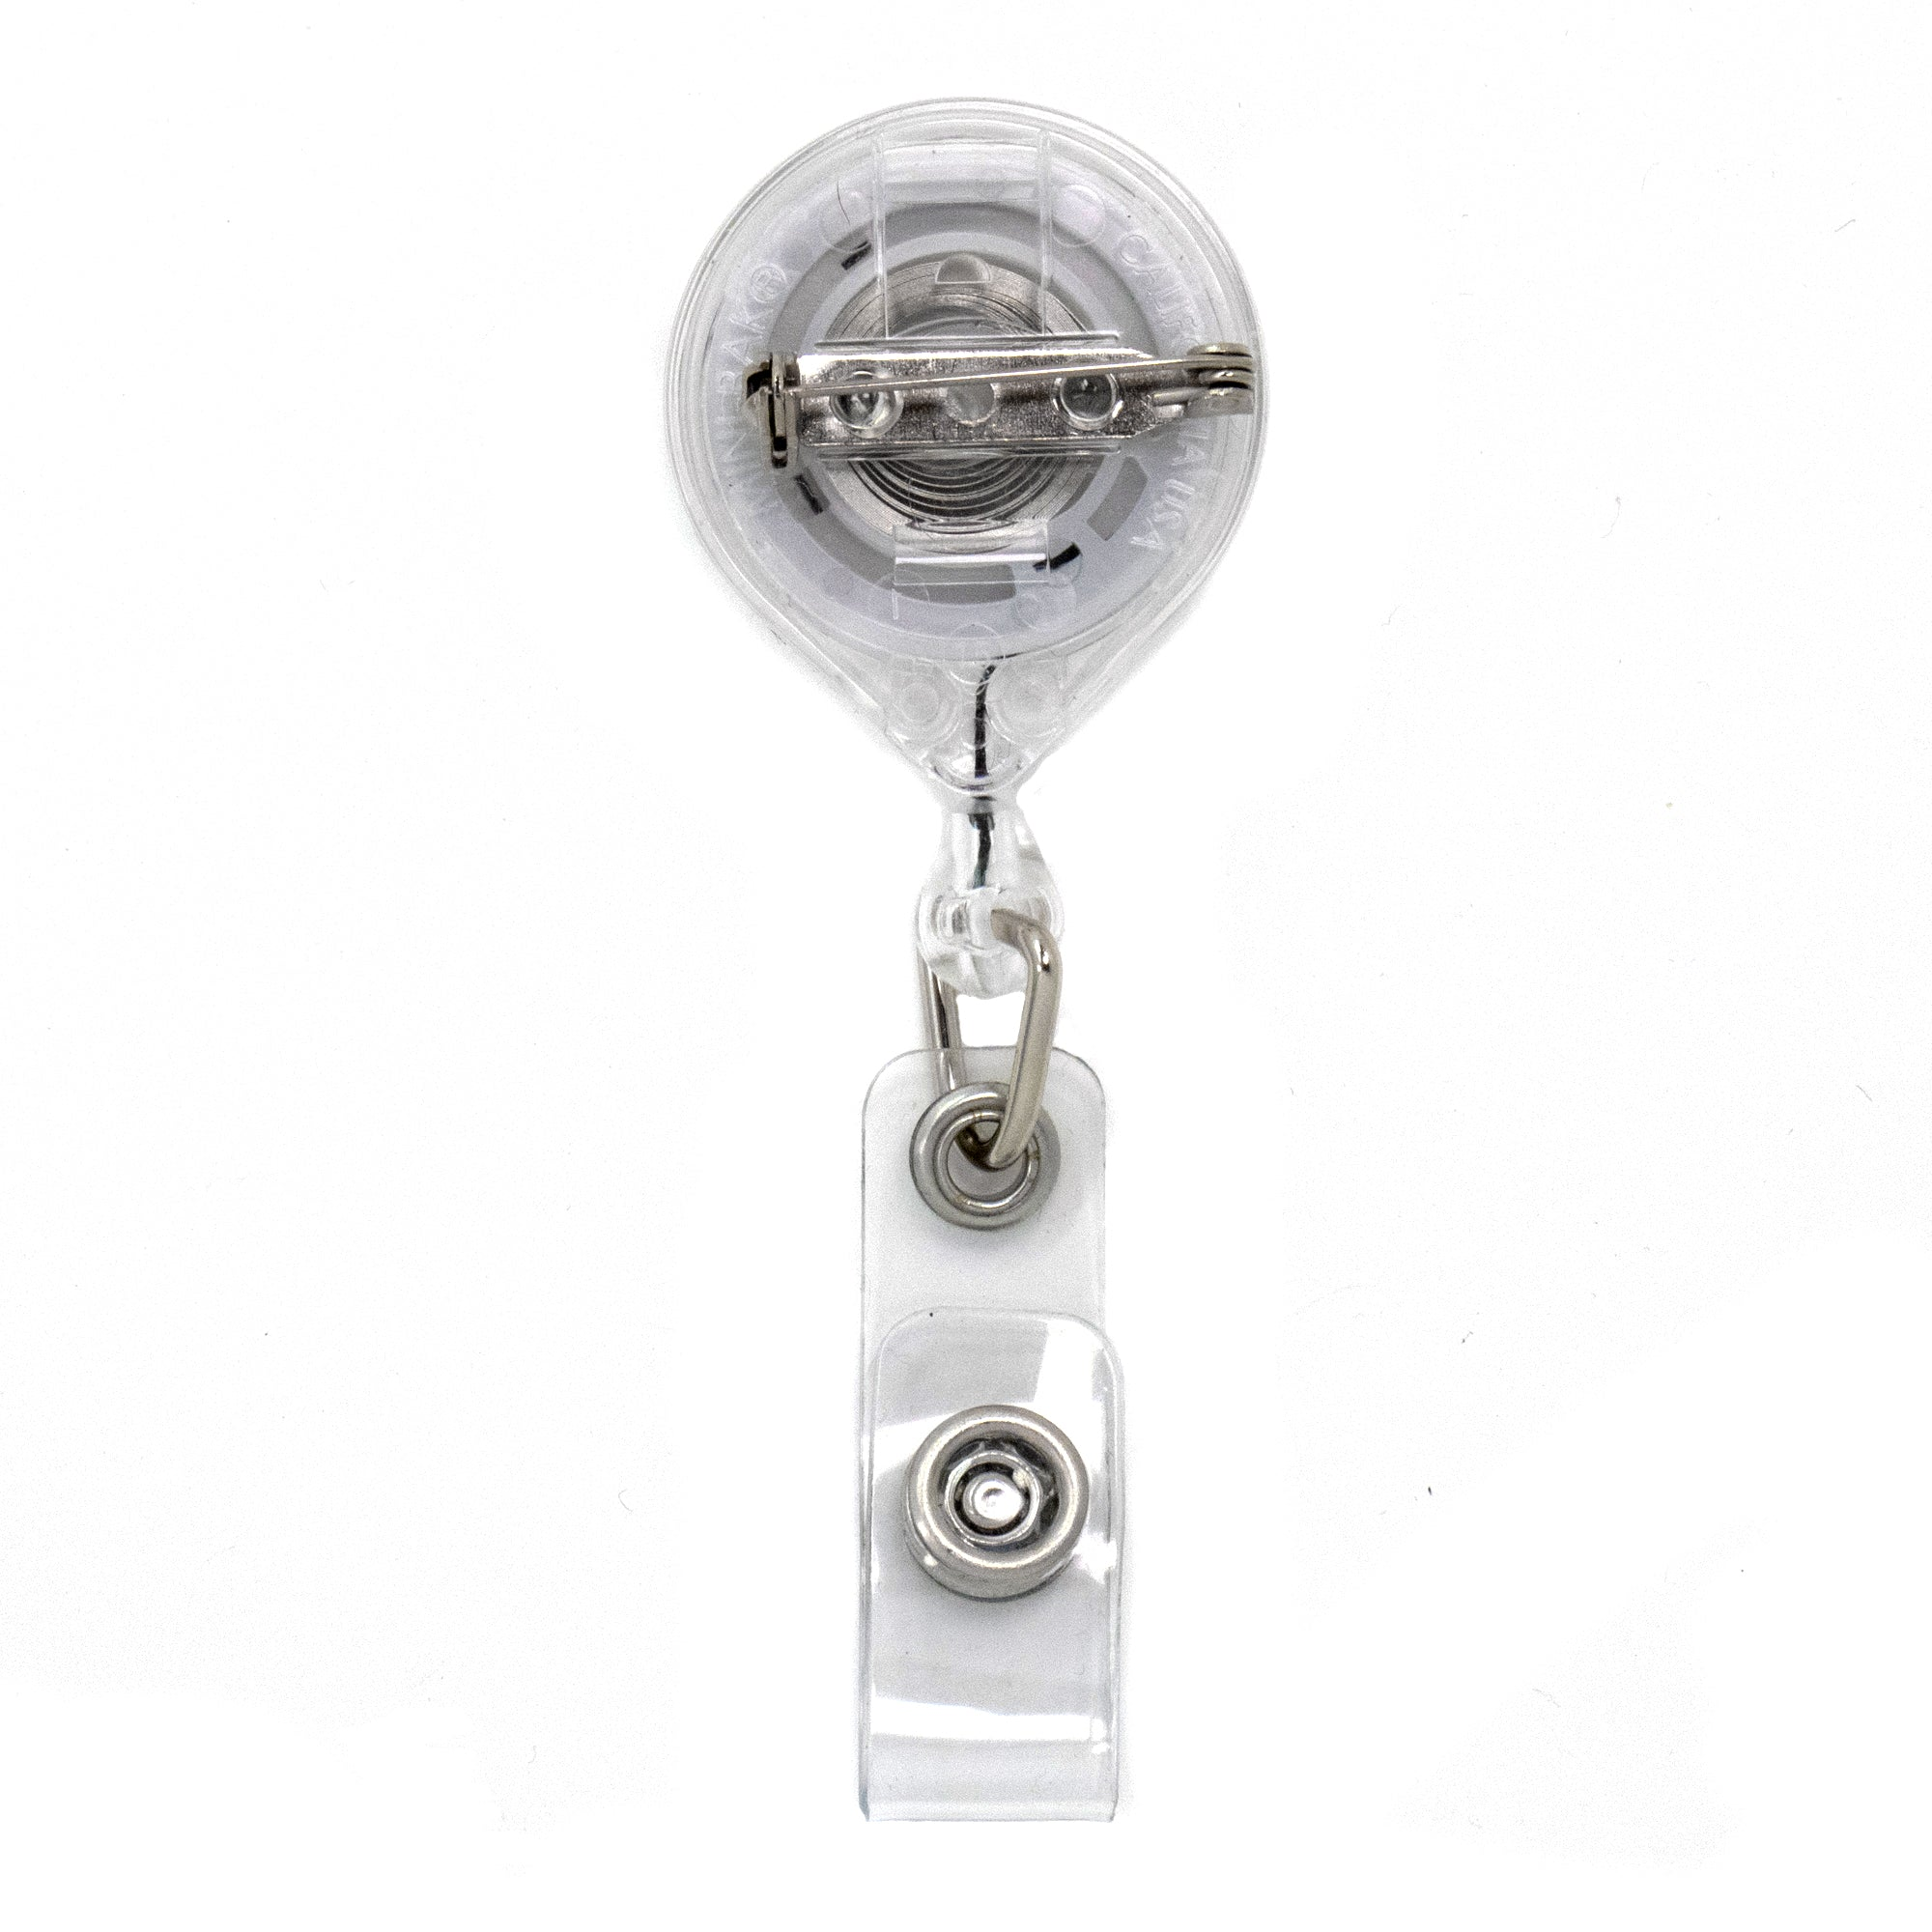 Buttonsmith Deluxe Retractable Badge Reel With Pin Back and Extra-Long 36 inch Standard Duty Cord - Made in the USA, 1 Year Warranty …